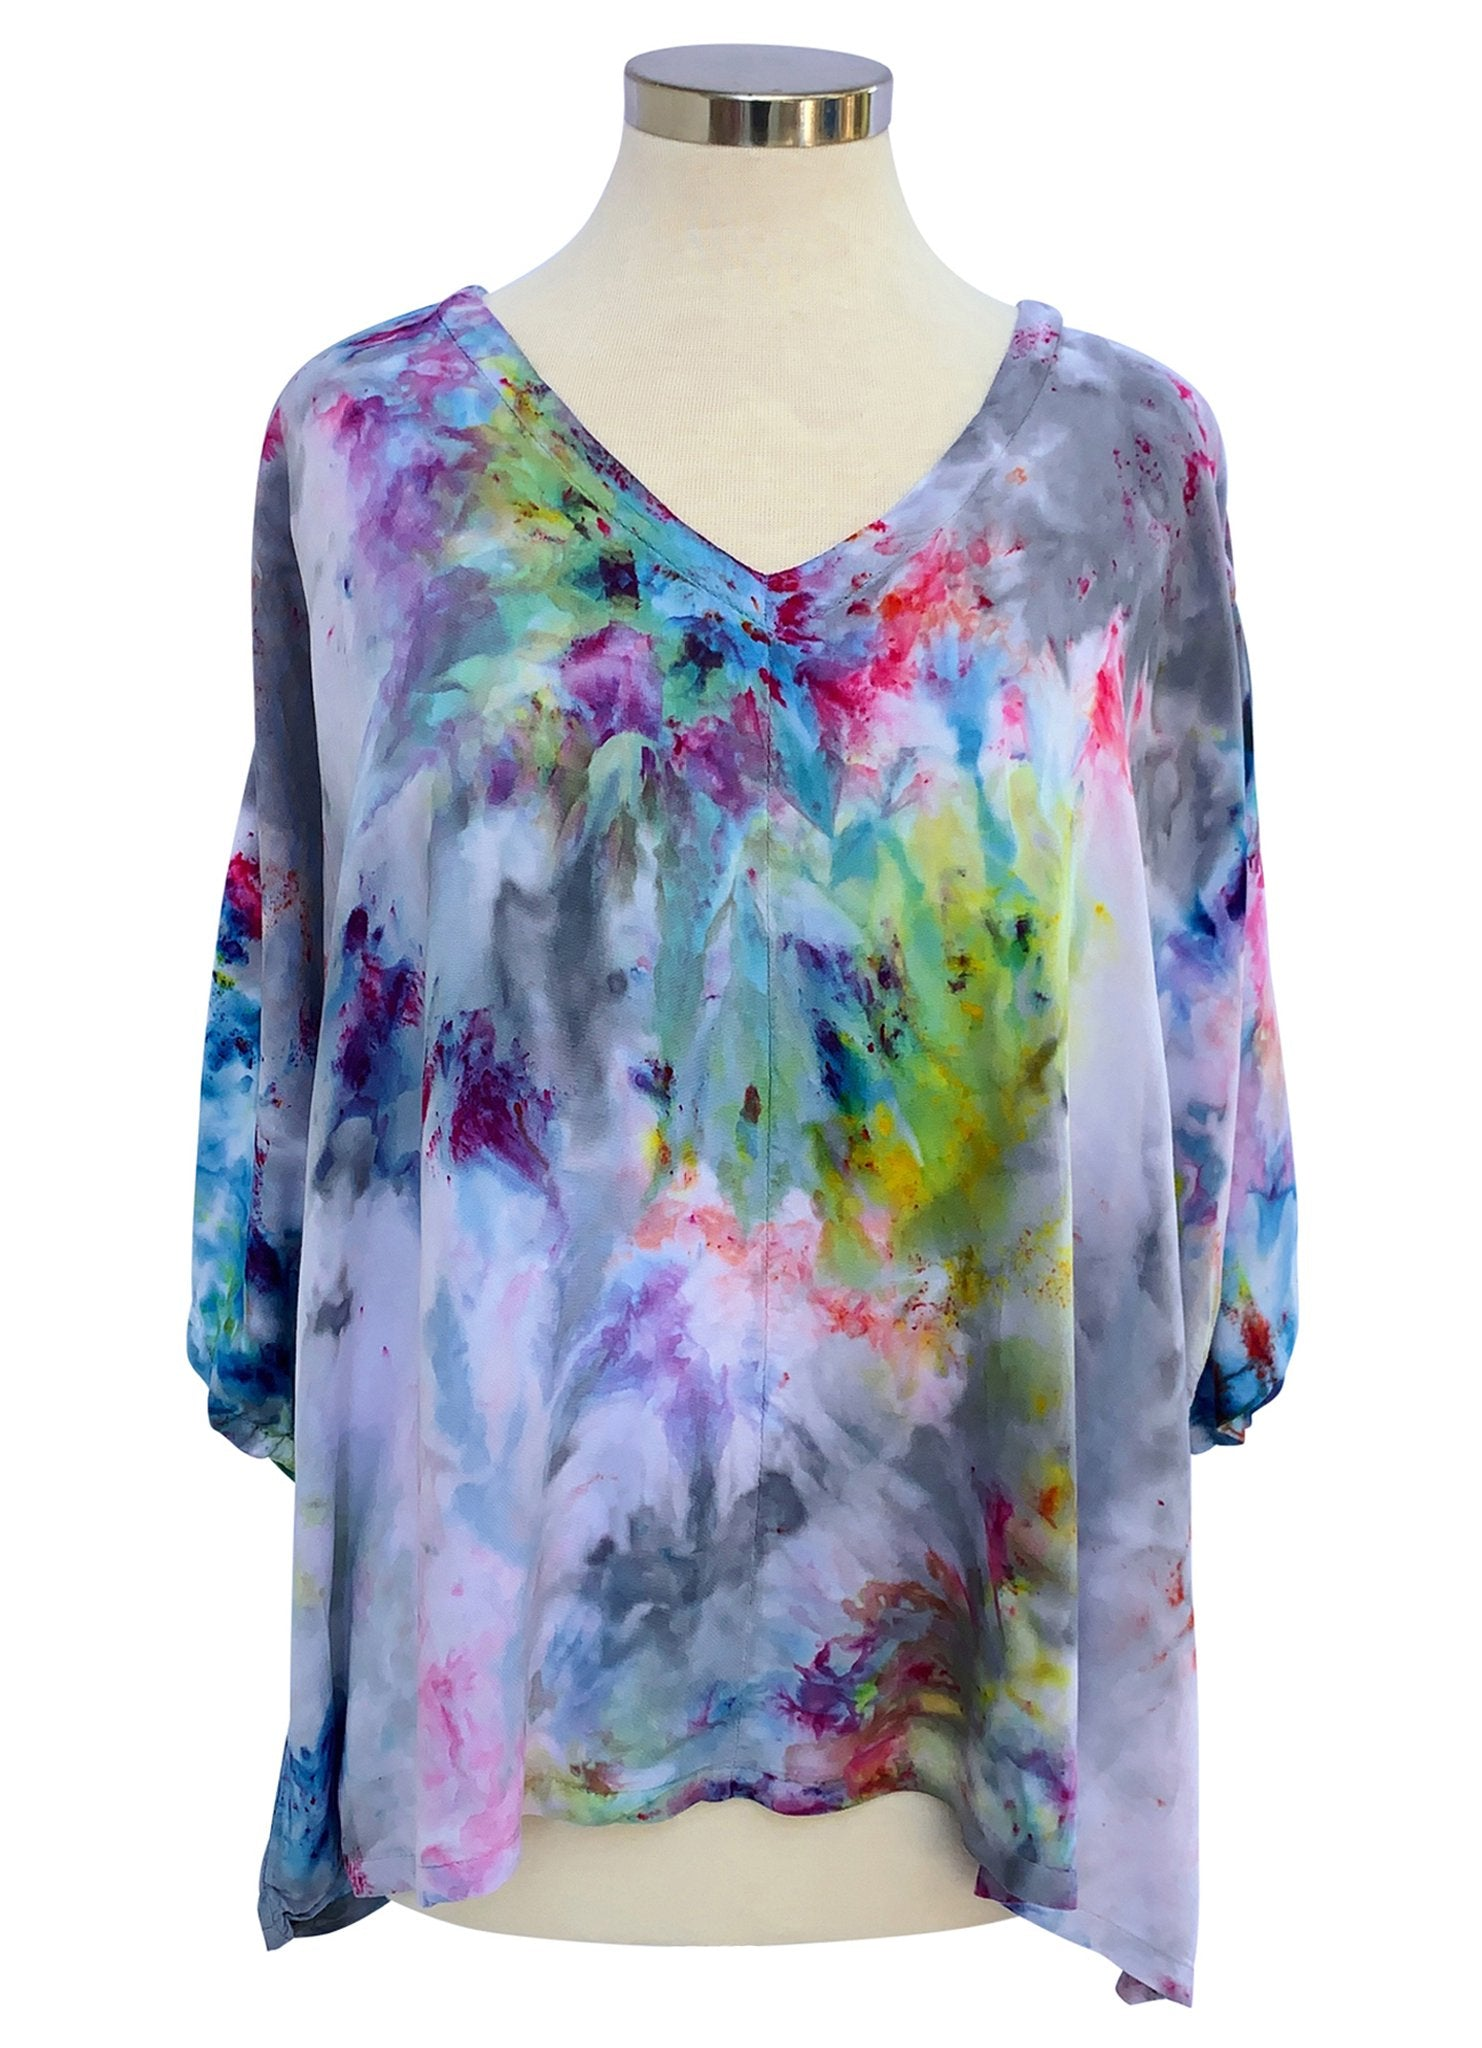 Easy Rayon Shirt in Candy Land - Top - Dyetology